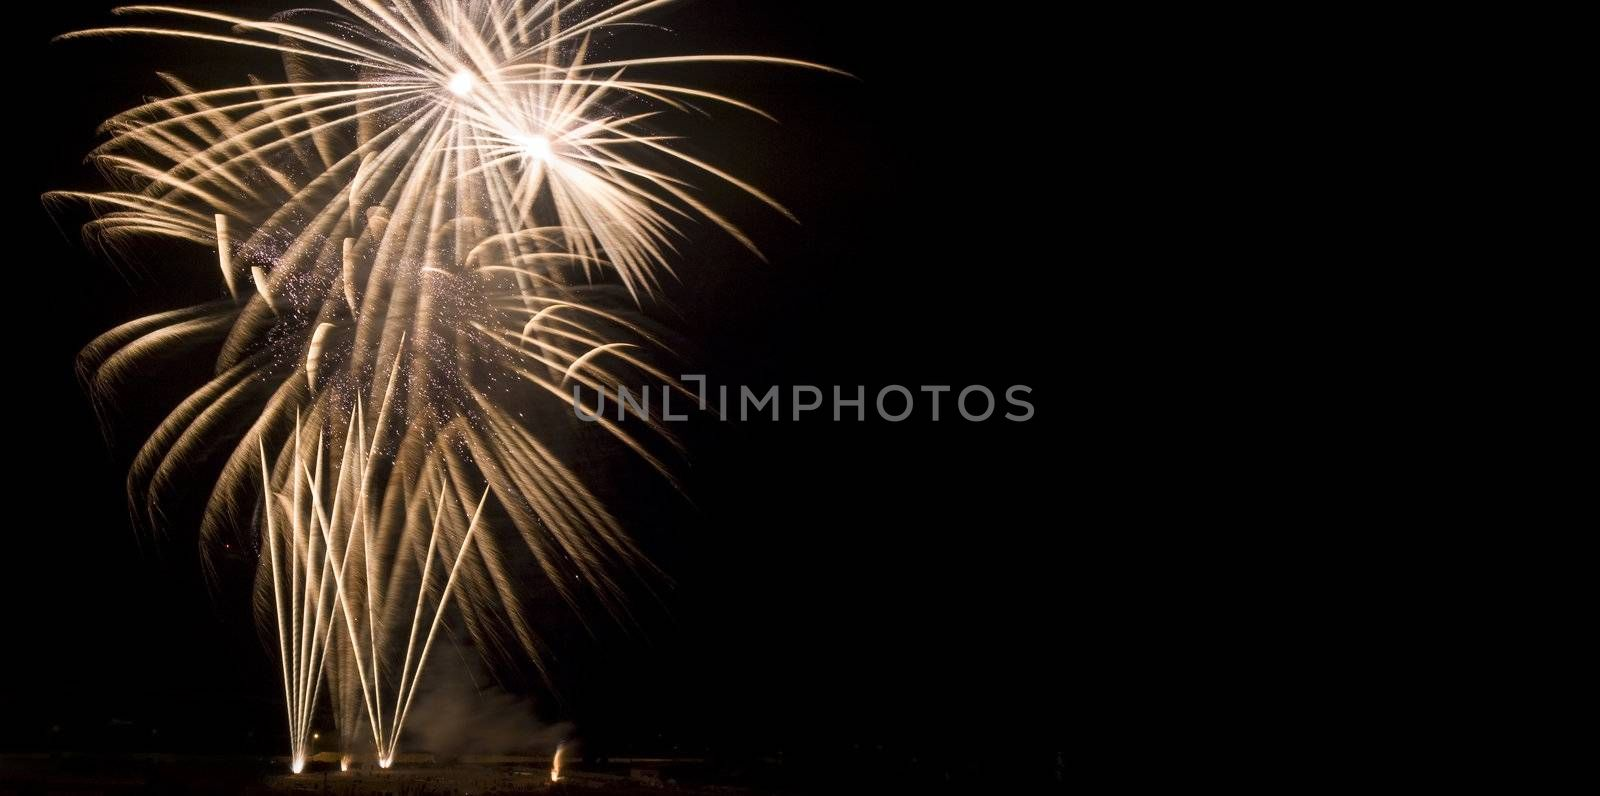 Various details of traditional pyrotechnical firework displays